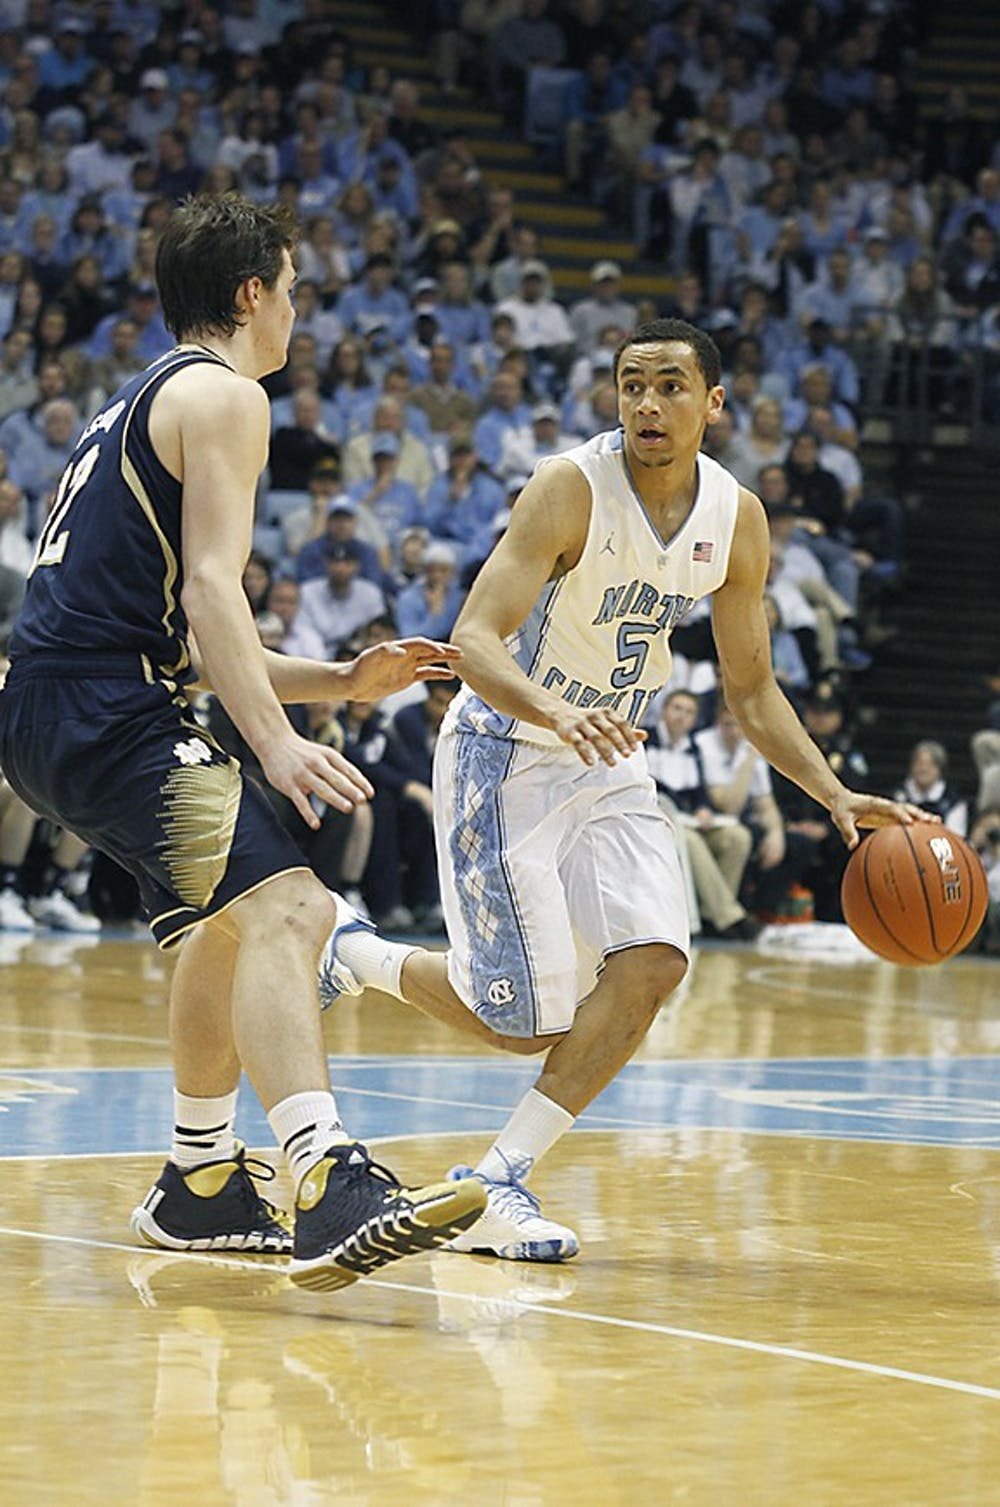 Sophomore guard Marcus Paige (5) attacks the basket against a Notre Dame player. Carolina defeated Notre Dame 63-61 on Monday in the Dean Dome.